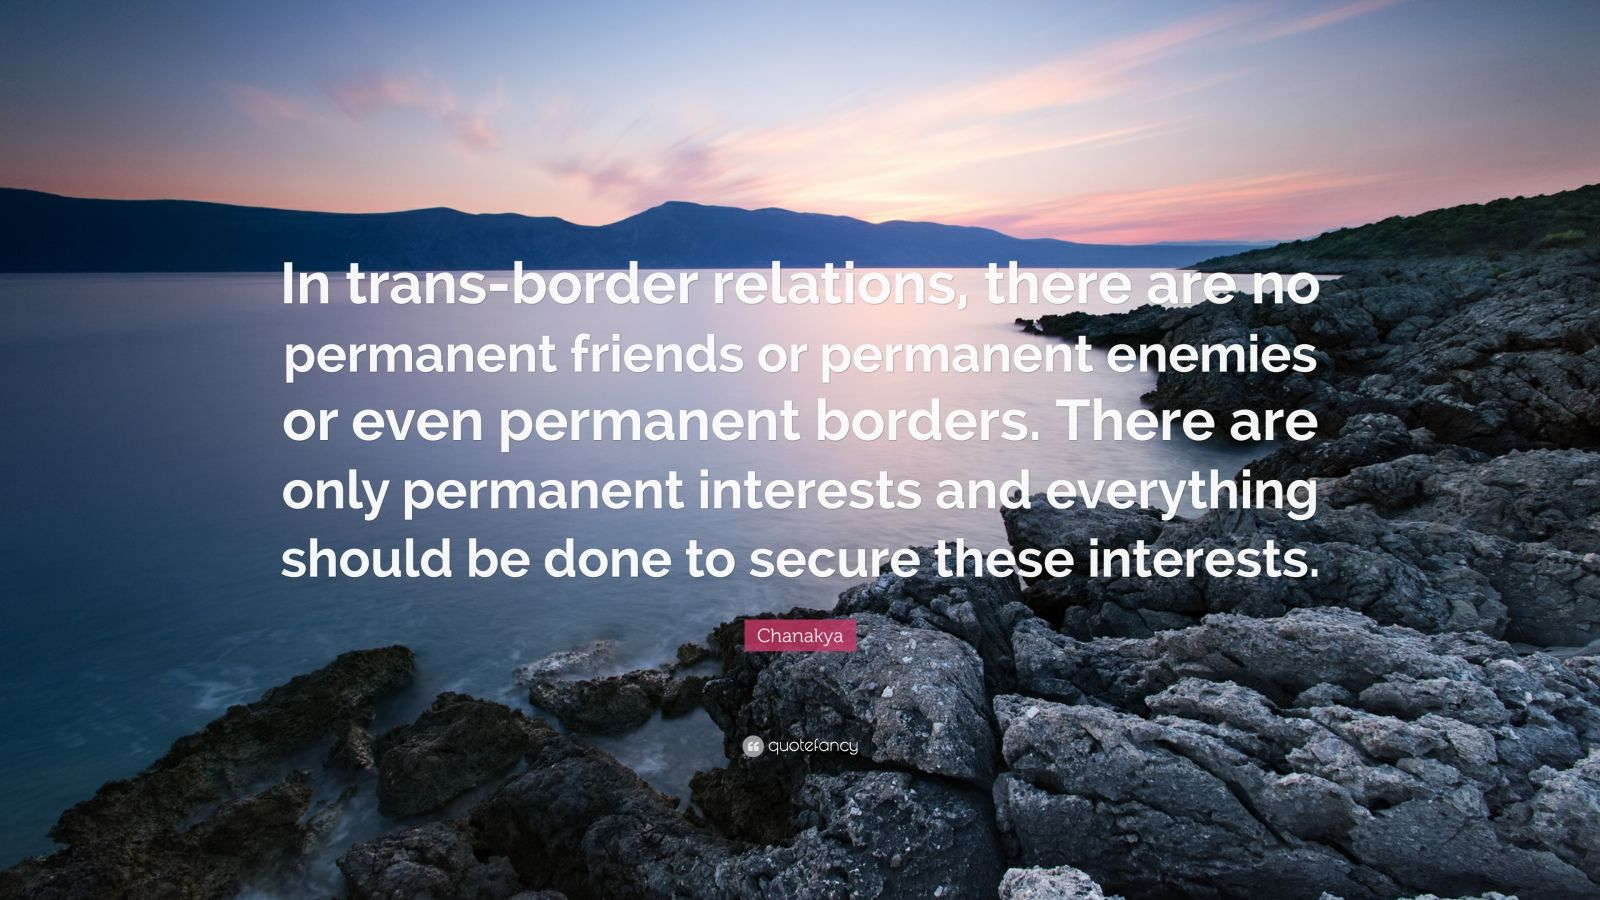 """Chanakya Quote: """"In trans-border relations, there are no permanent friends or permanent enemies or even permanent borders. There are only permanent interests and everything should be done to secure these interests."""""""